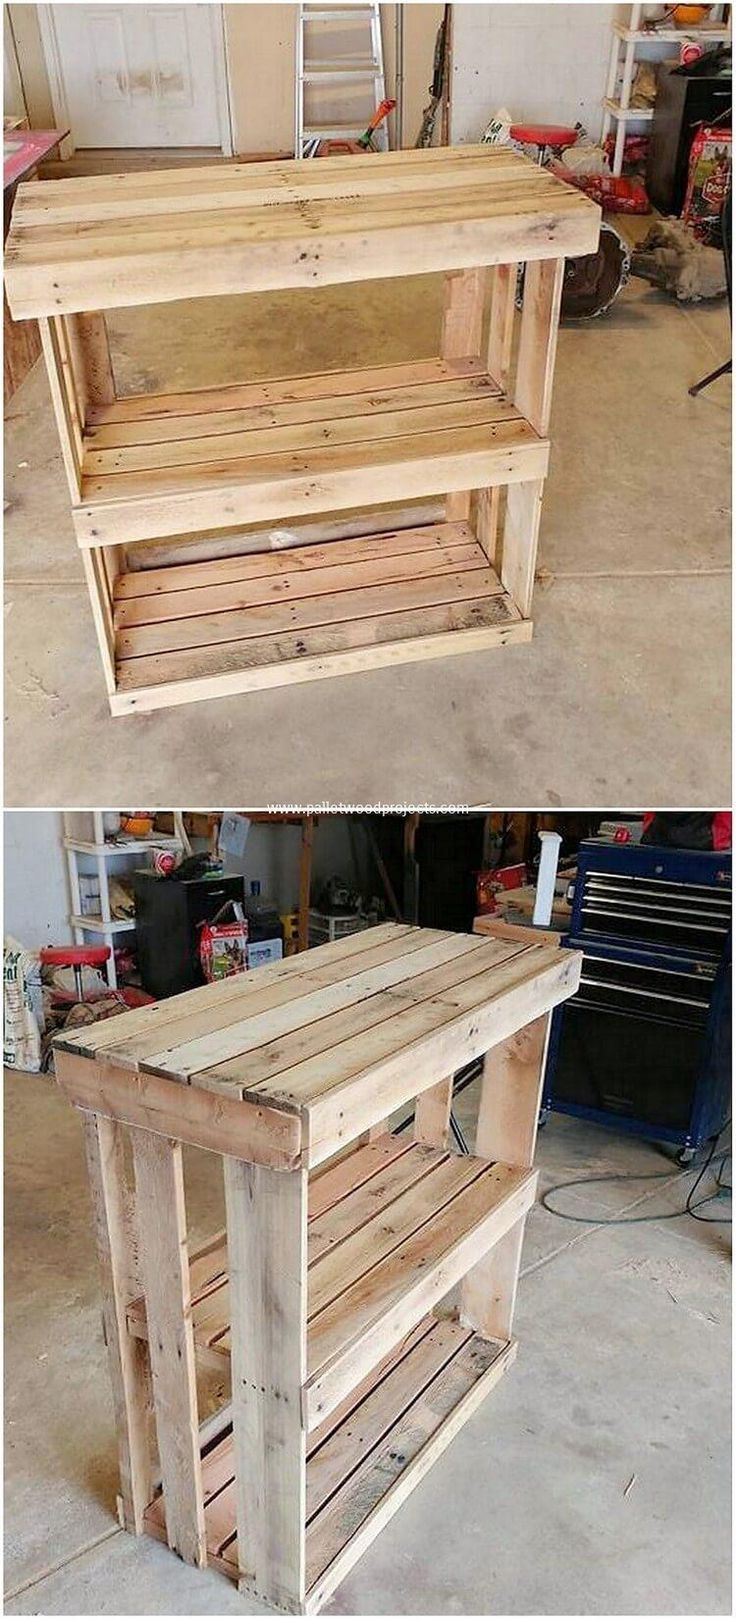 Lovely And Implausible Things Made With Old Pallets Pallet